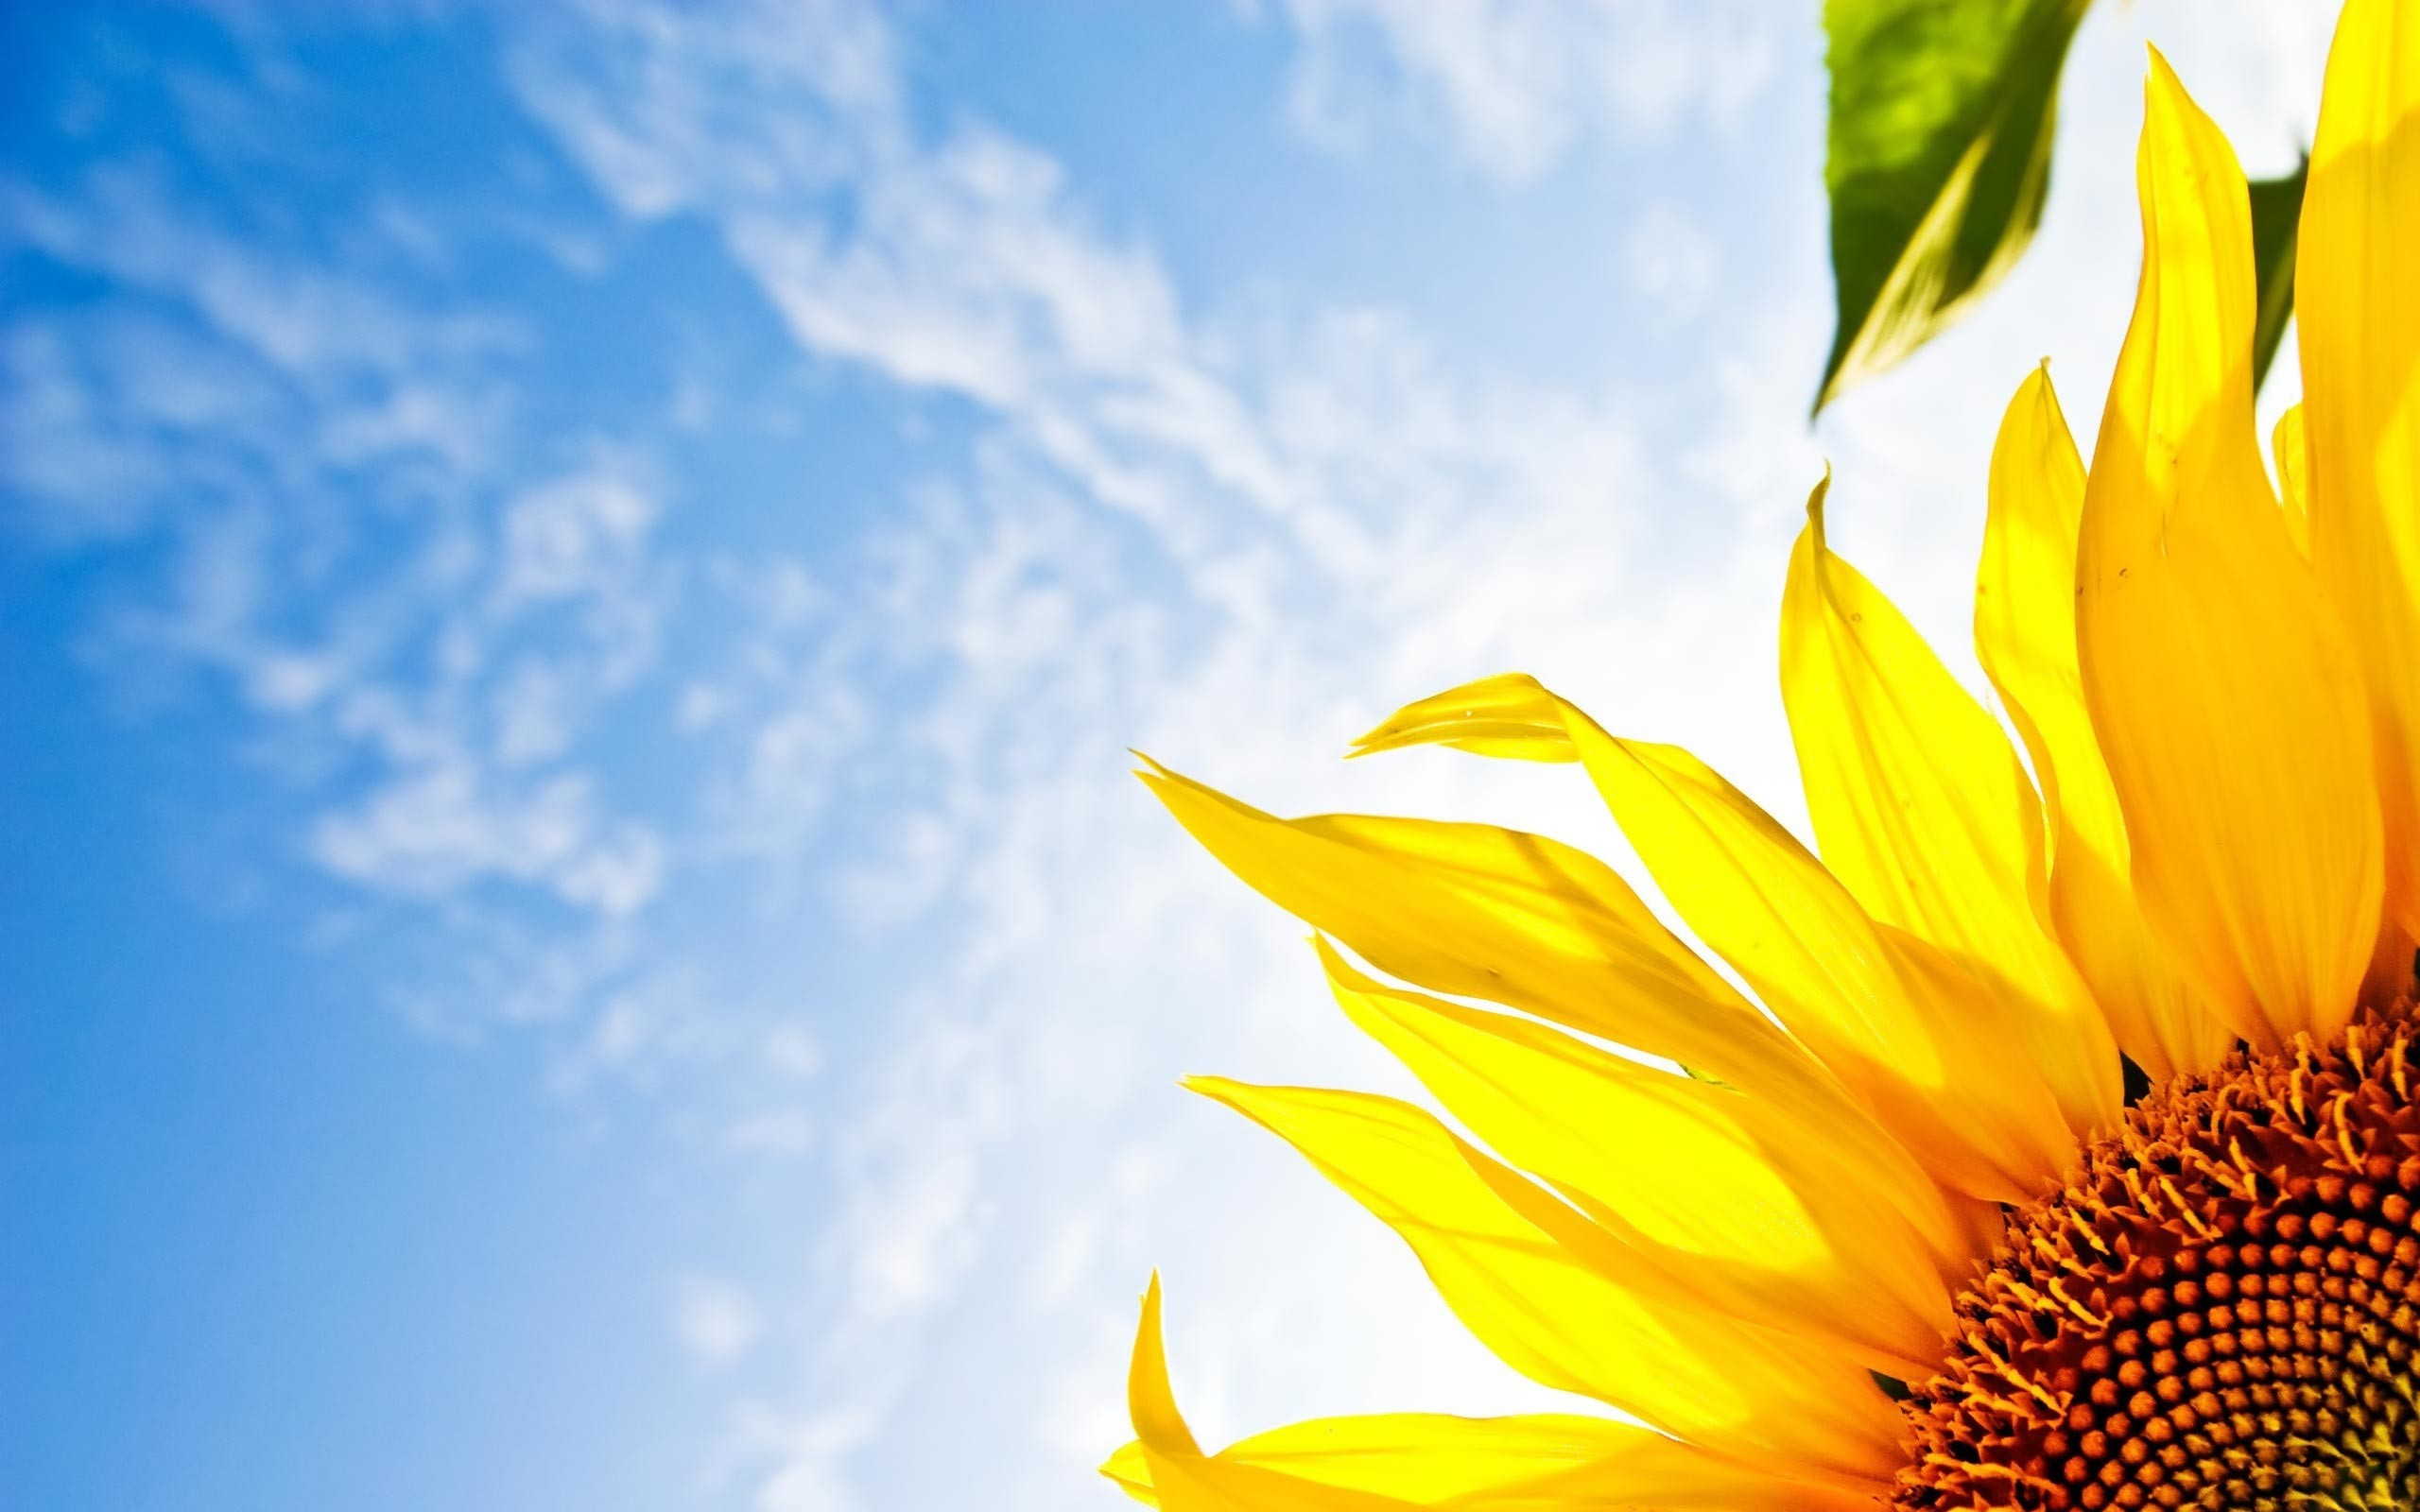 2560x1600 Desktop Wallpaper Gallery Windows Sky Sunflower Free